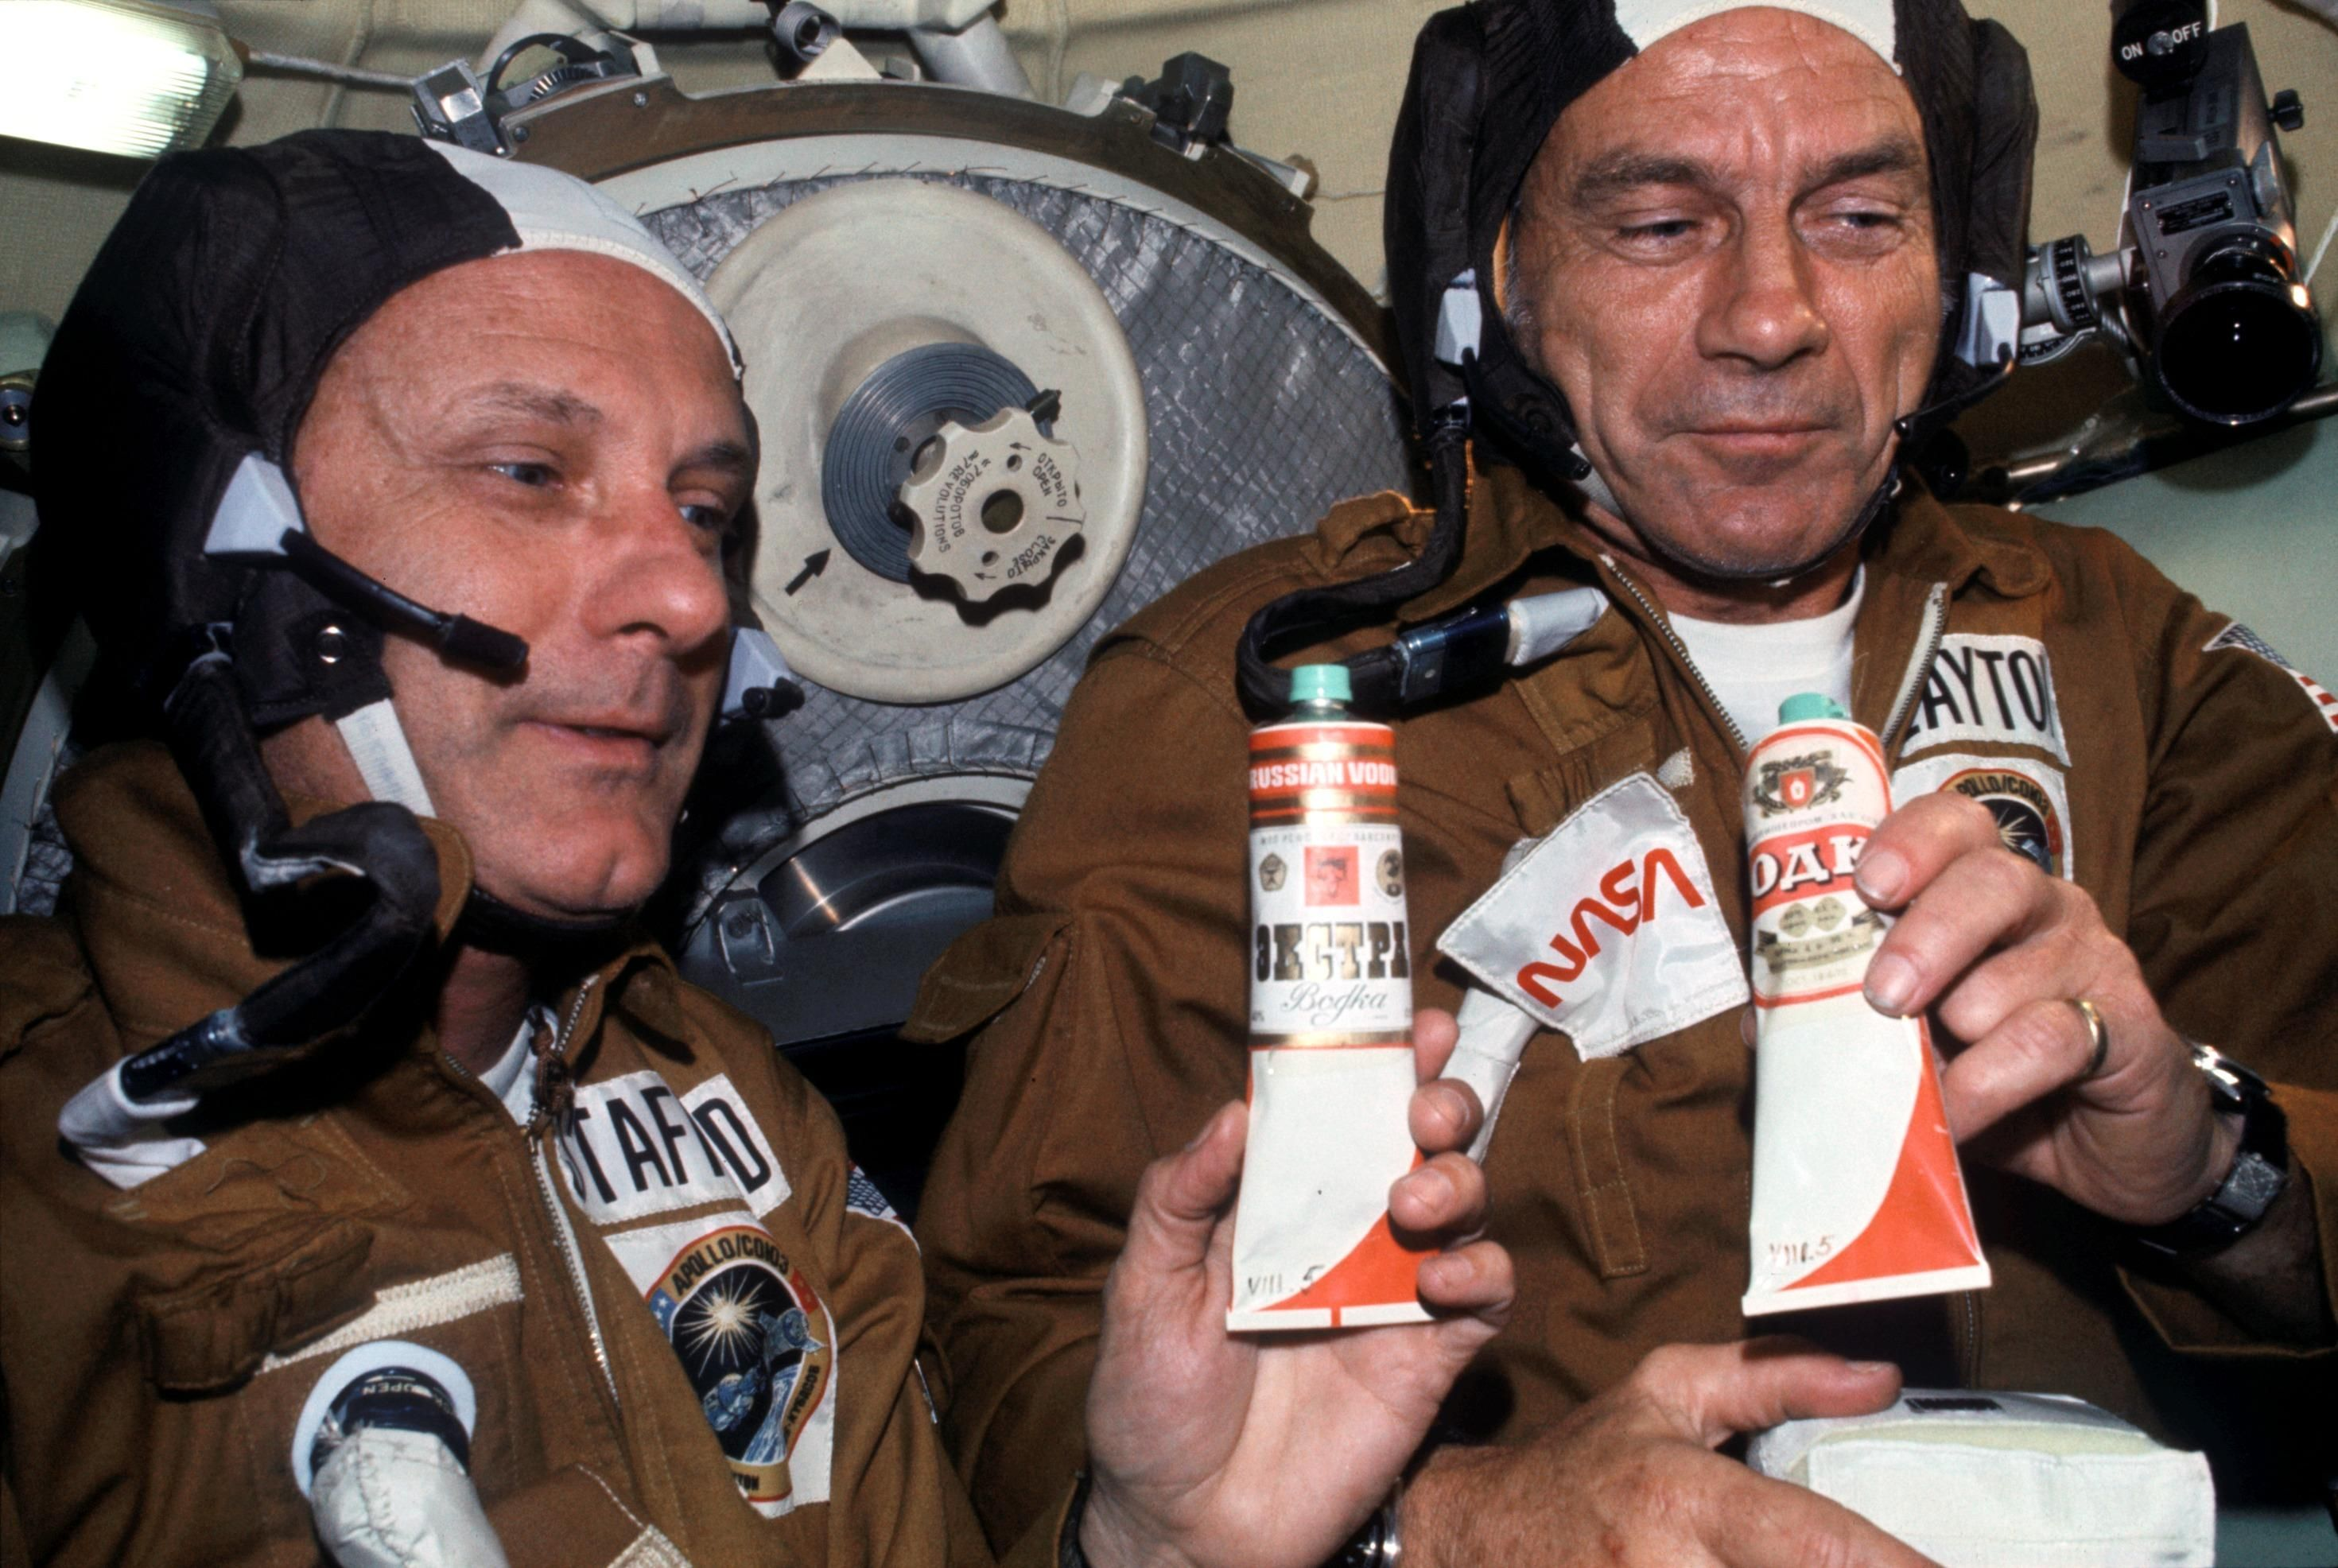 Astronauts eating tubes of space food